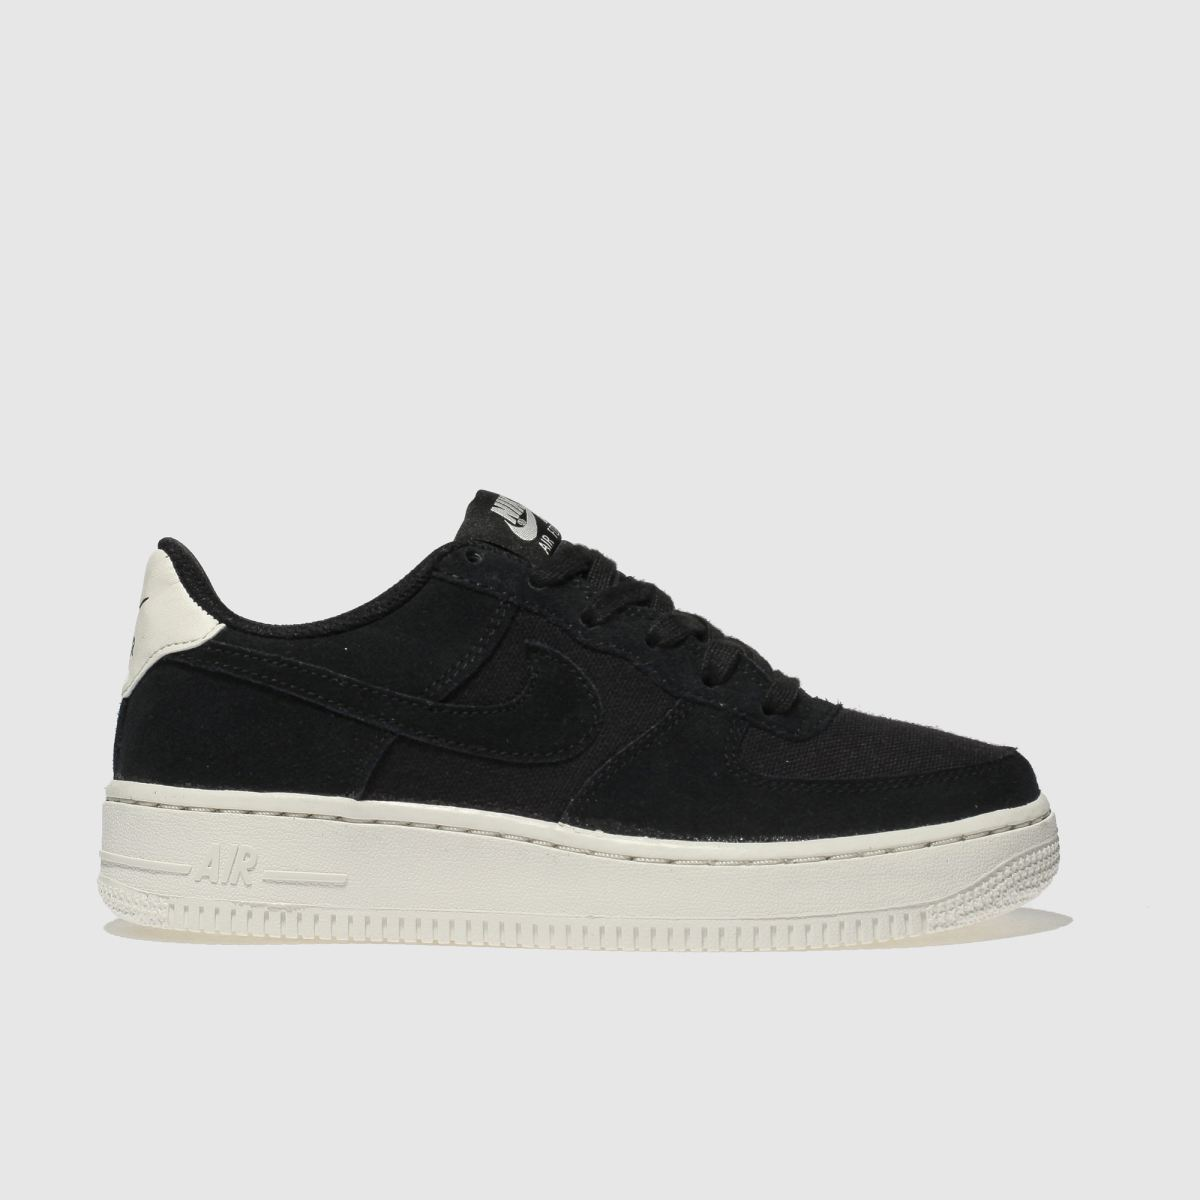 Nike Black & White Air Force 1 Unisex Youth Youth